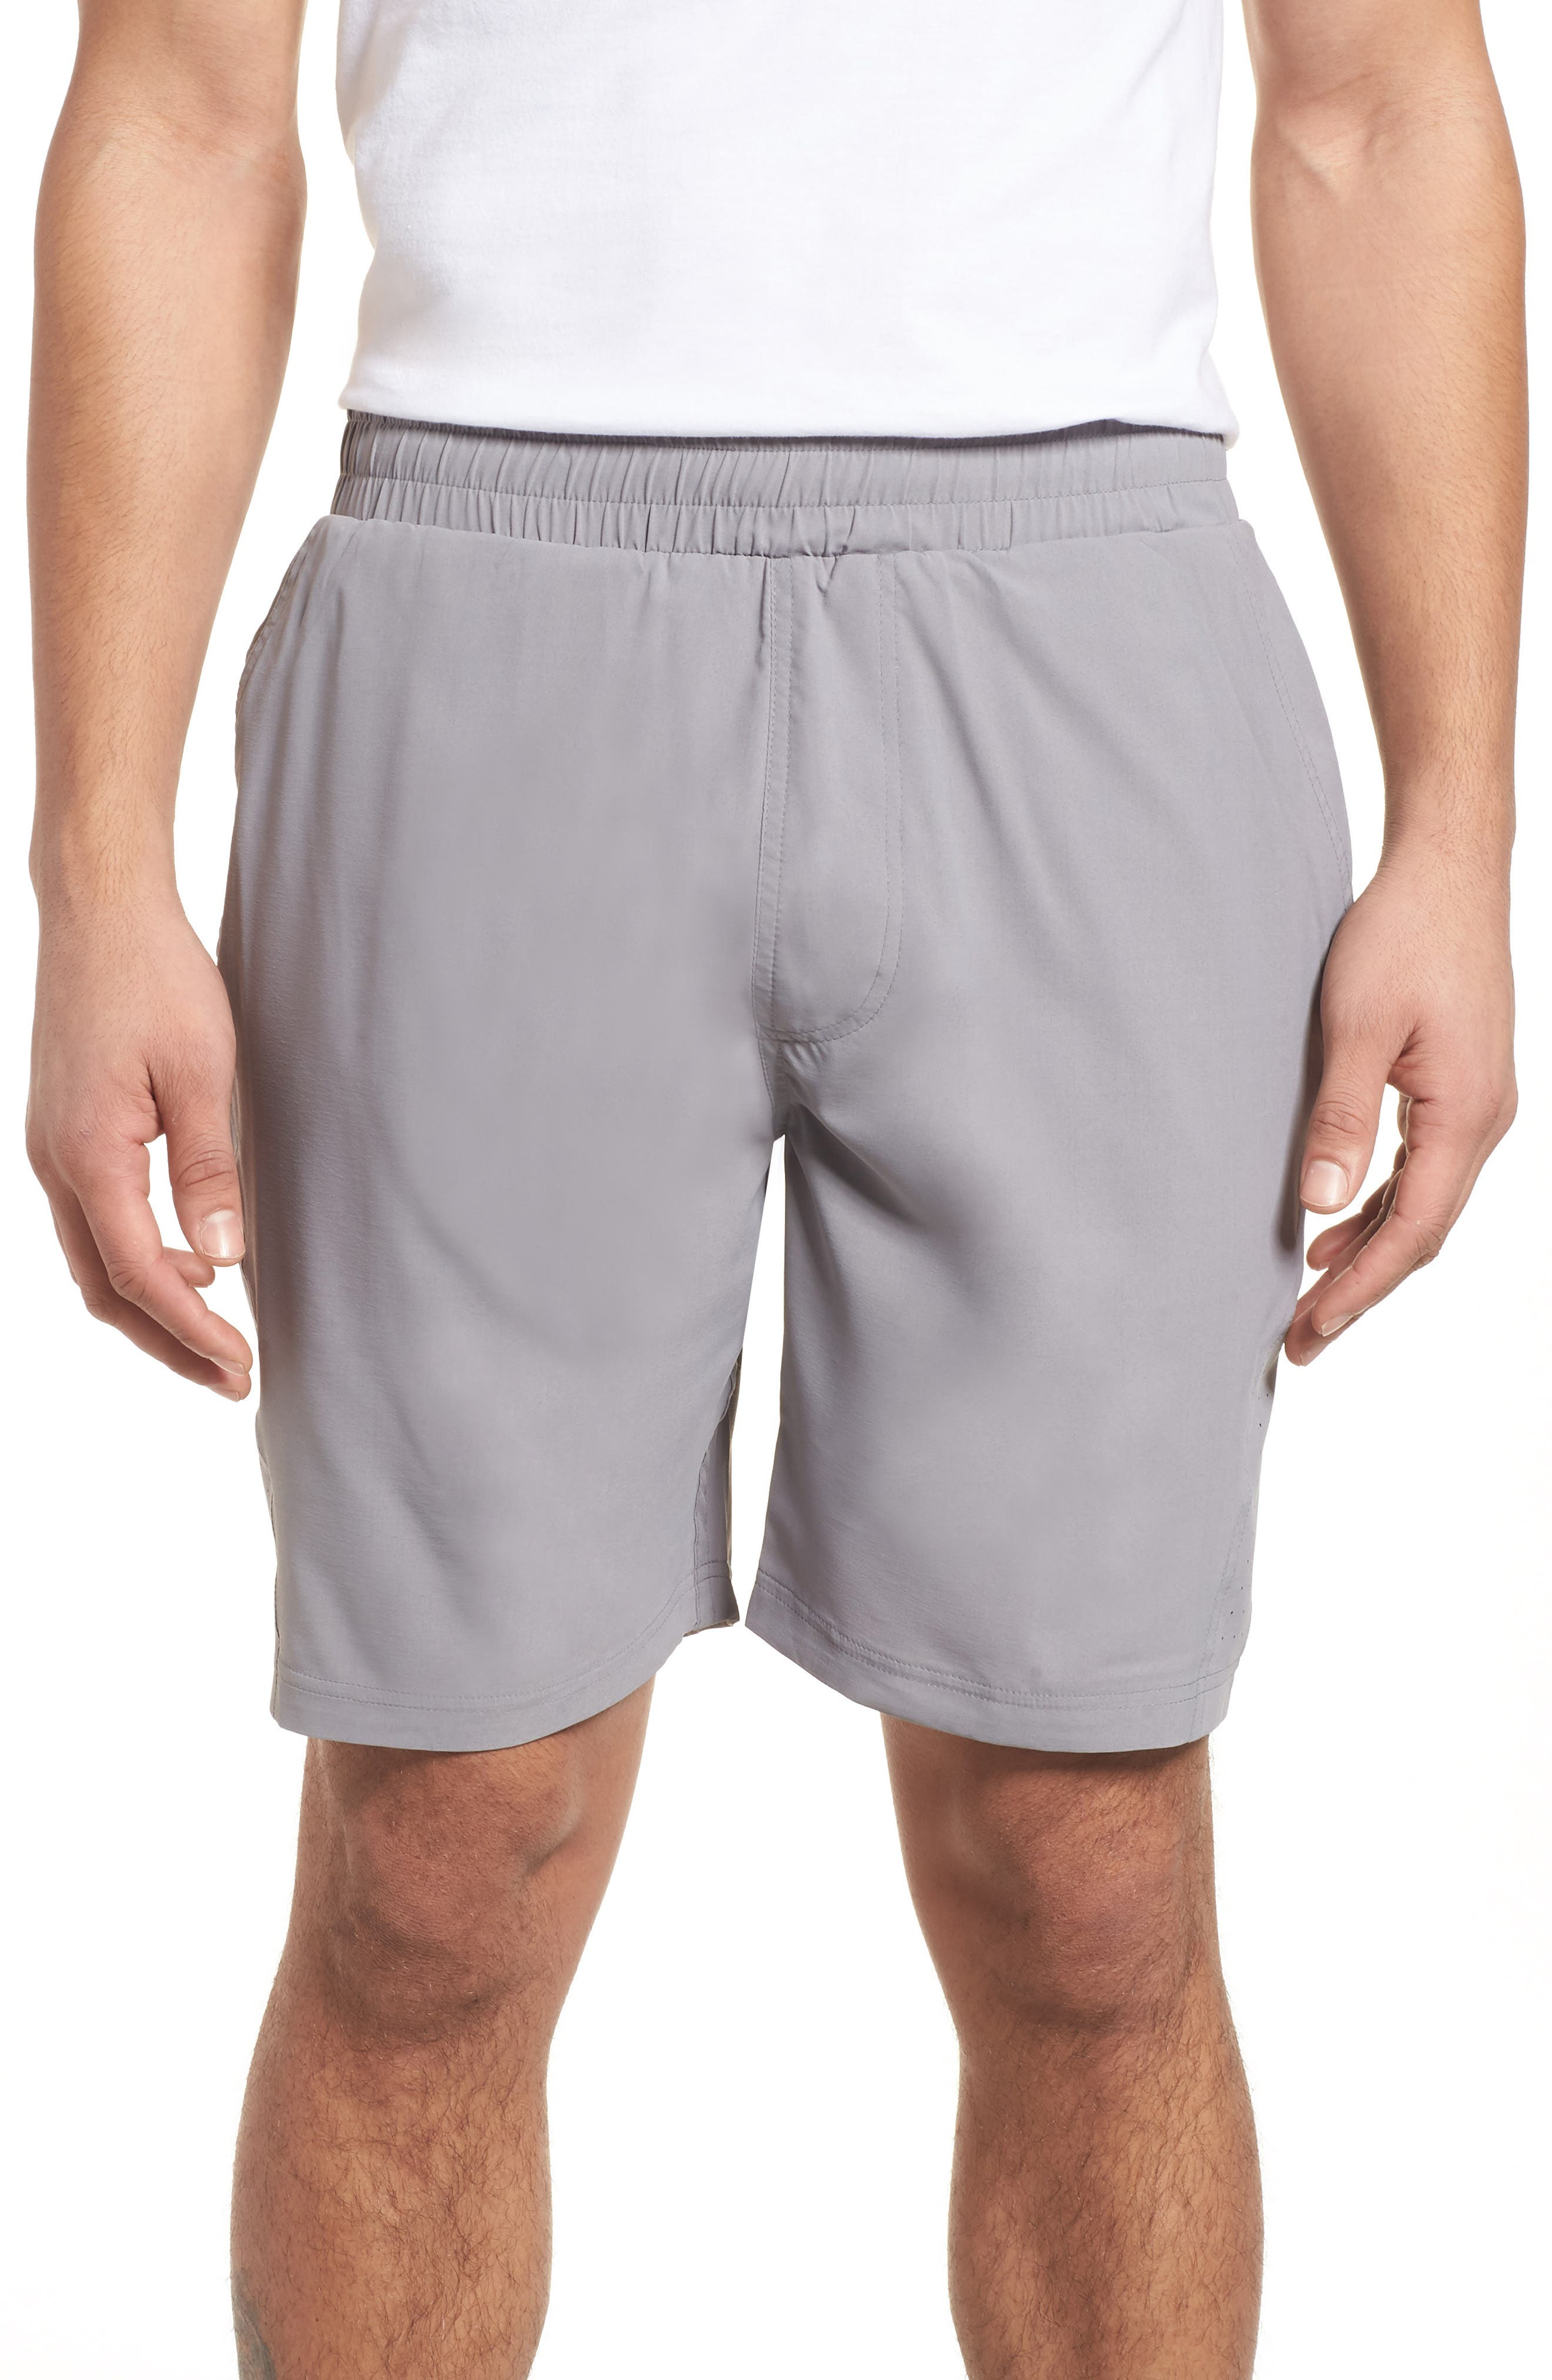 Charge Water Resistant Athletic Shorts,                         Main,                         color, Monument